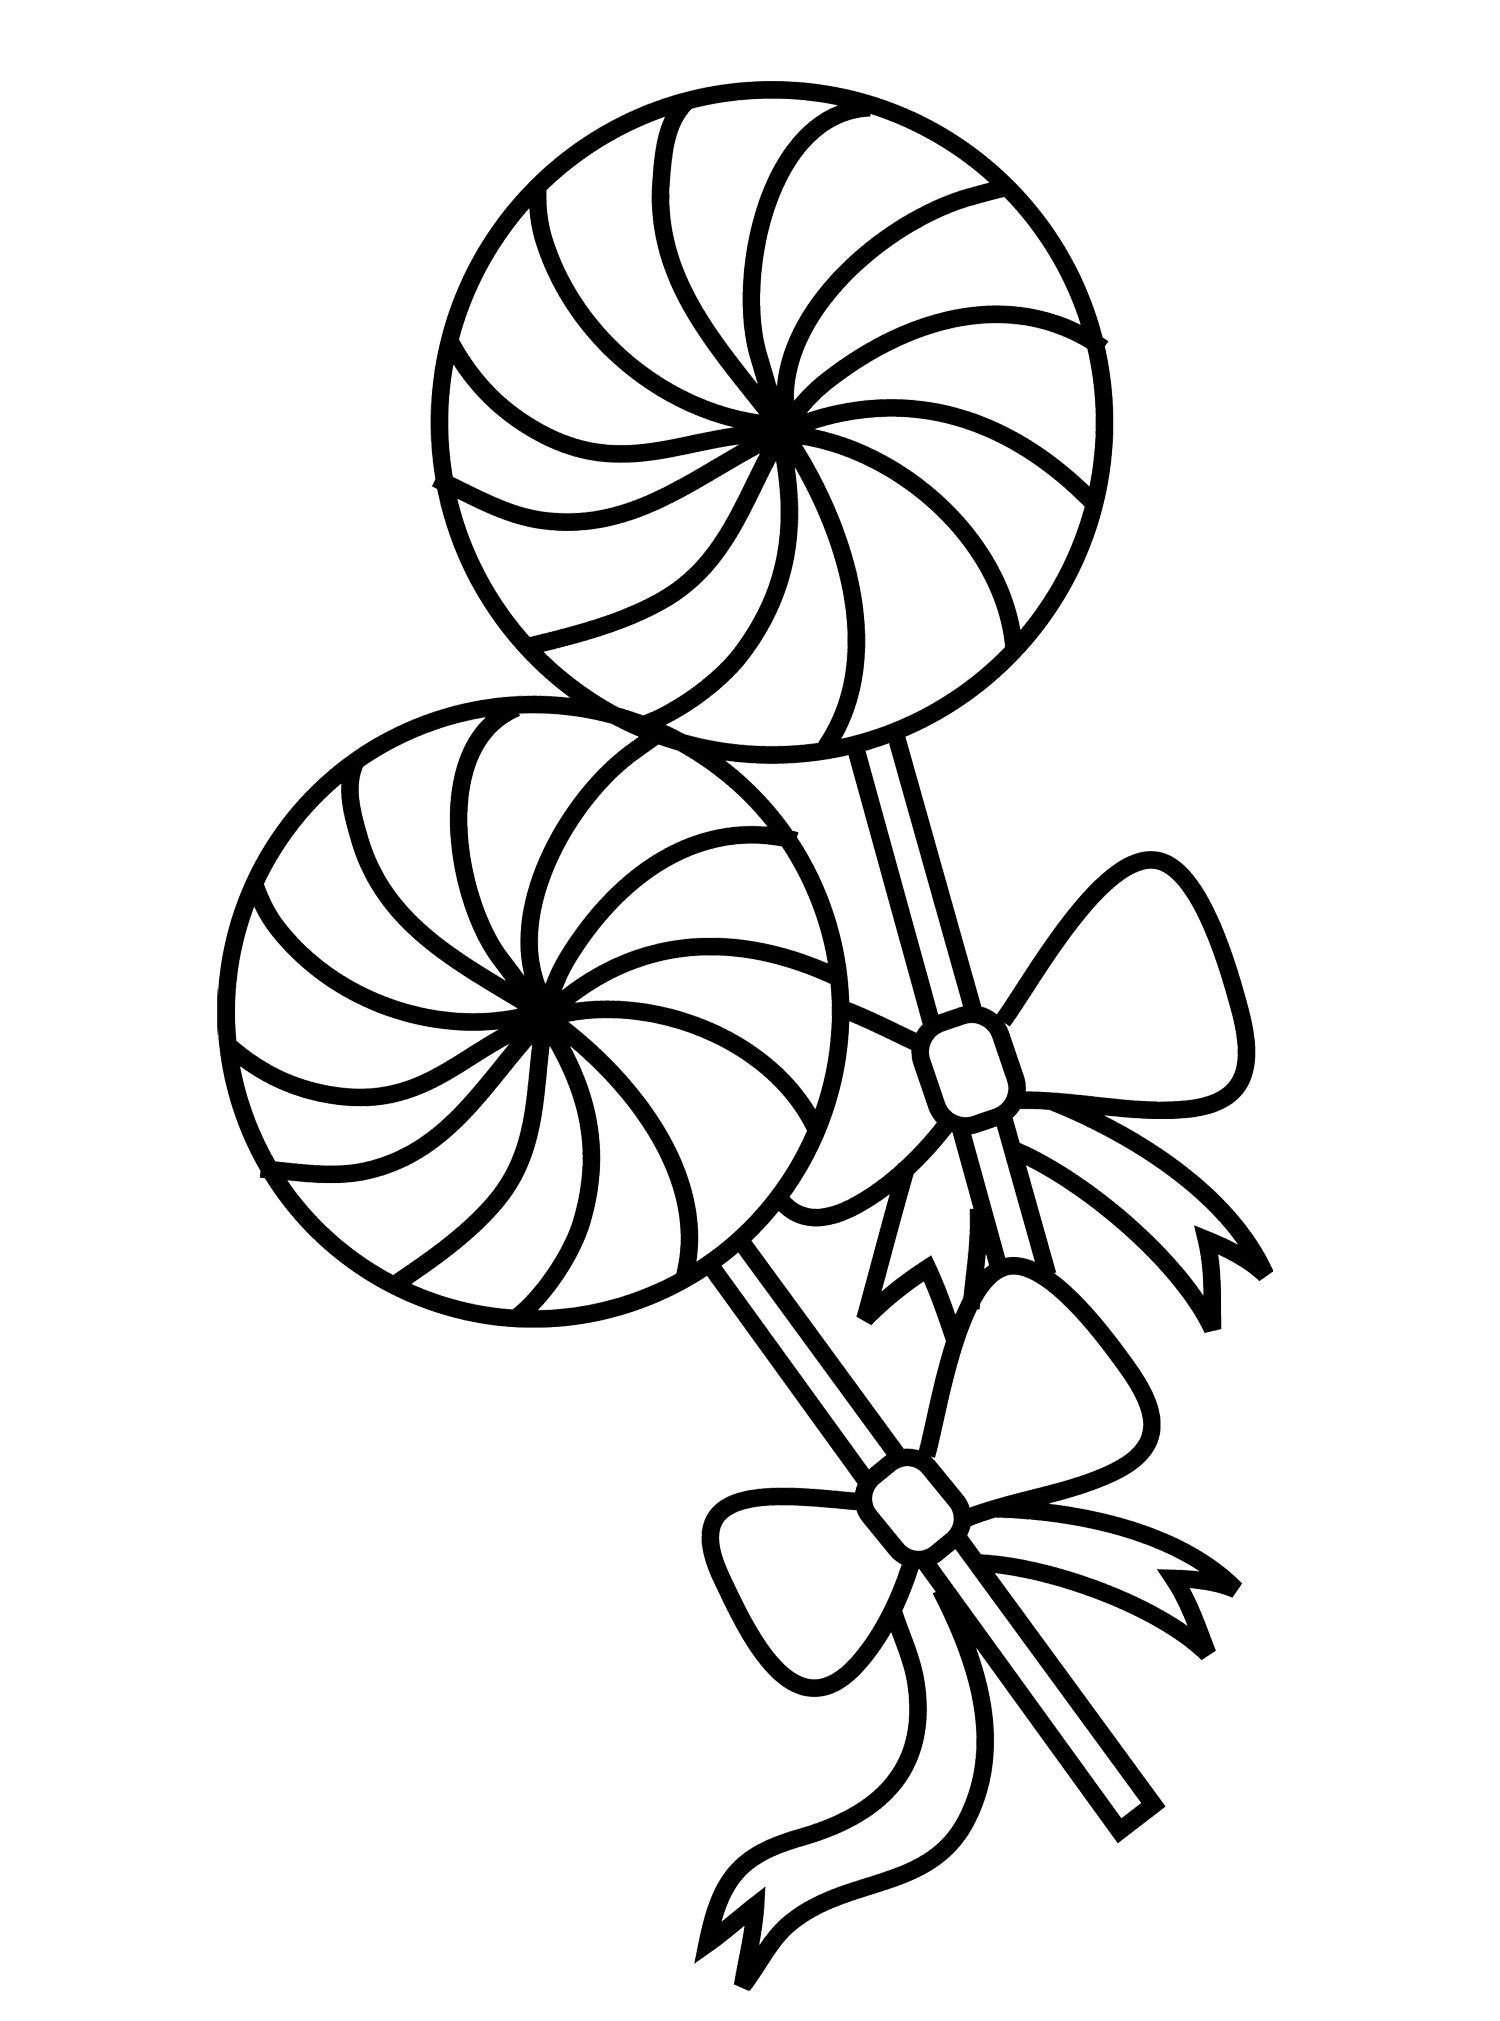 Pin On Doodle Flowers And Animals